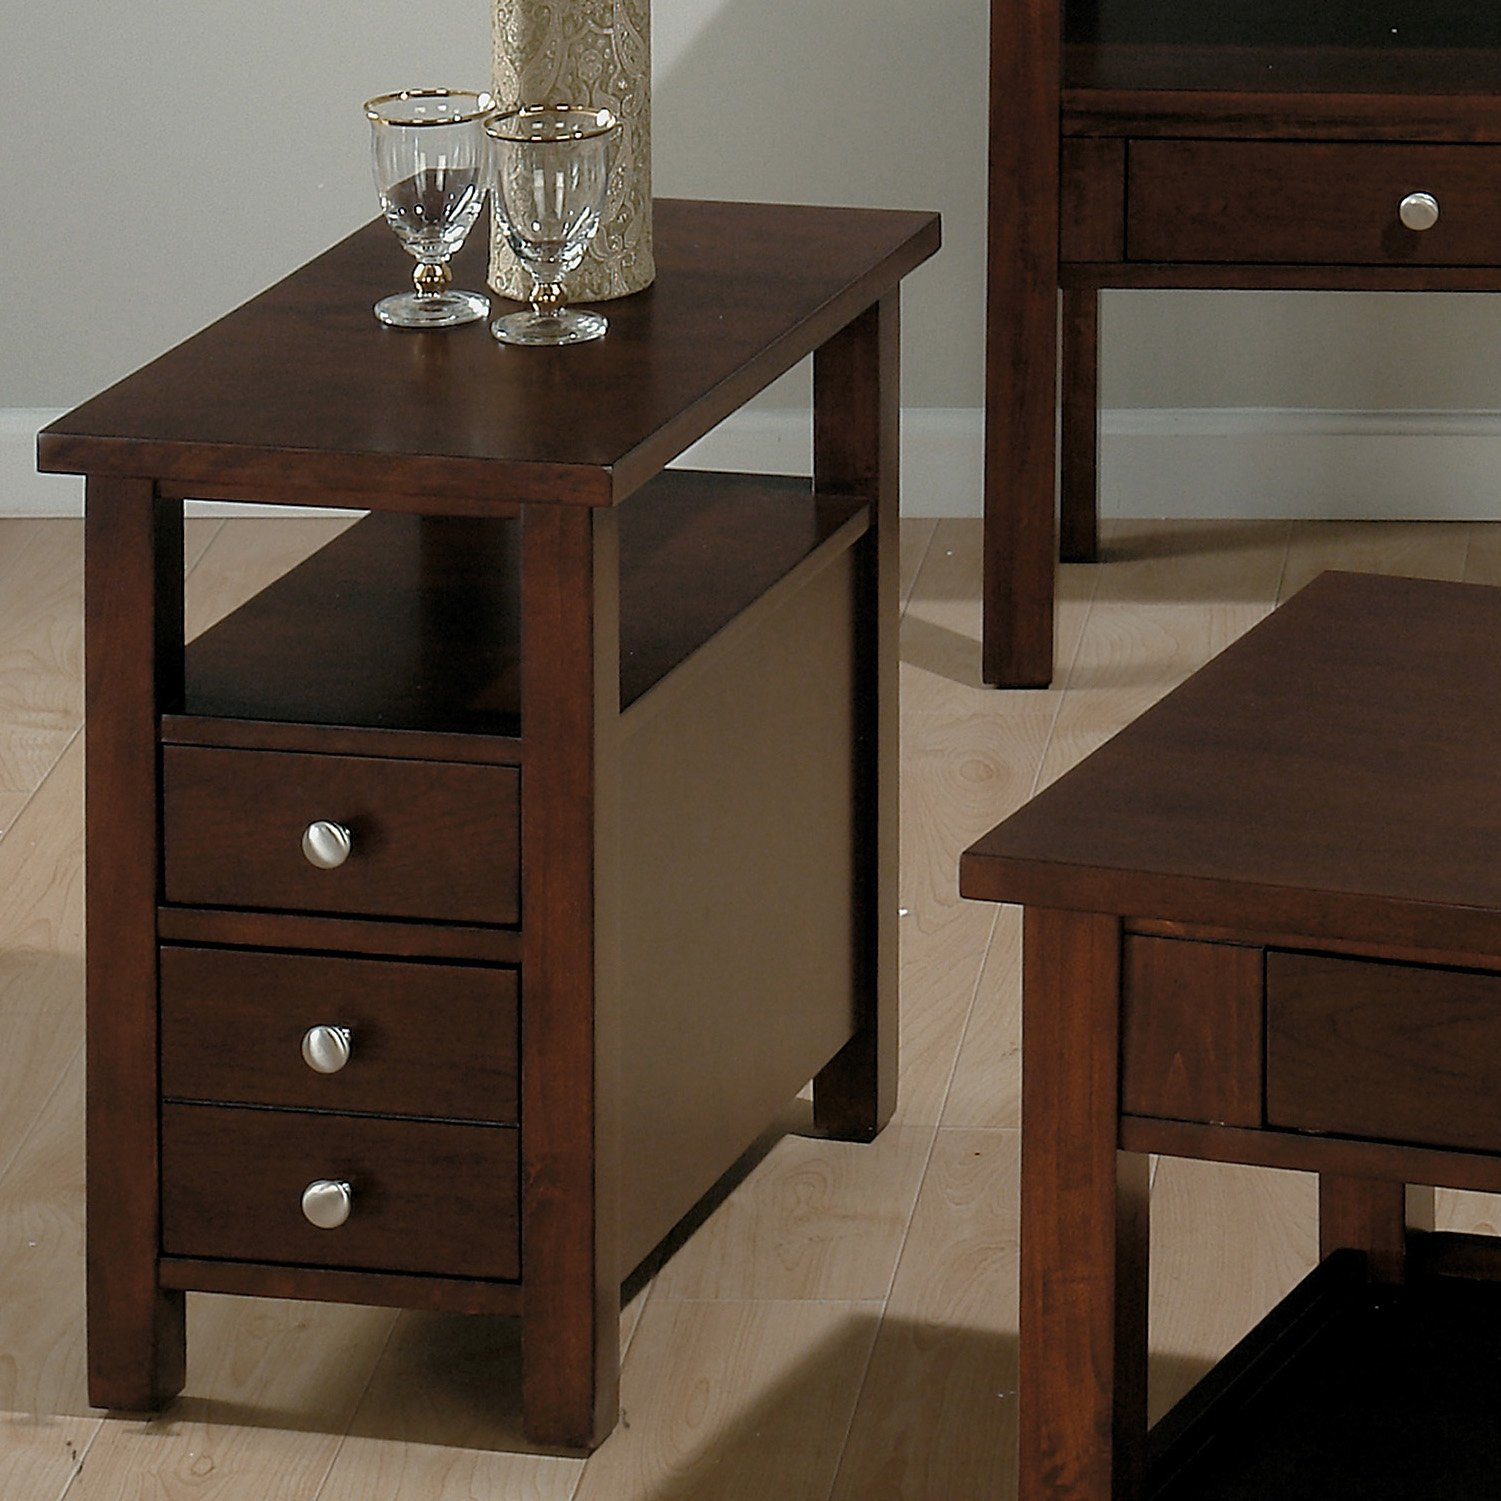 Ordinaire Dark Wooden Small End Table With Drawers